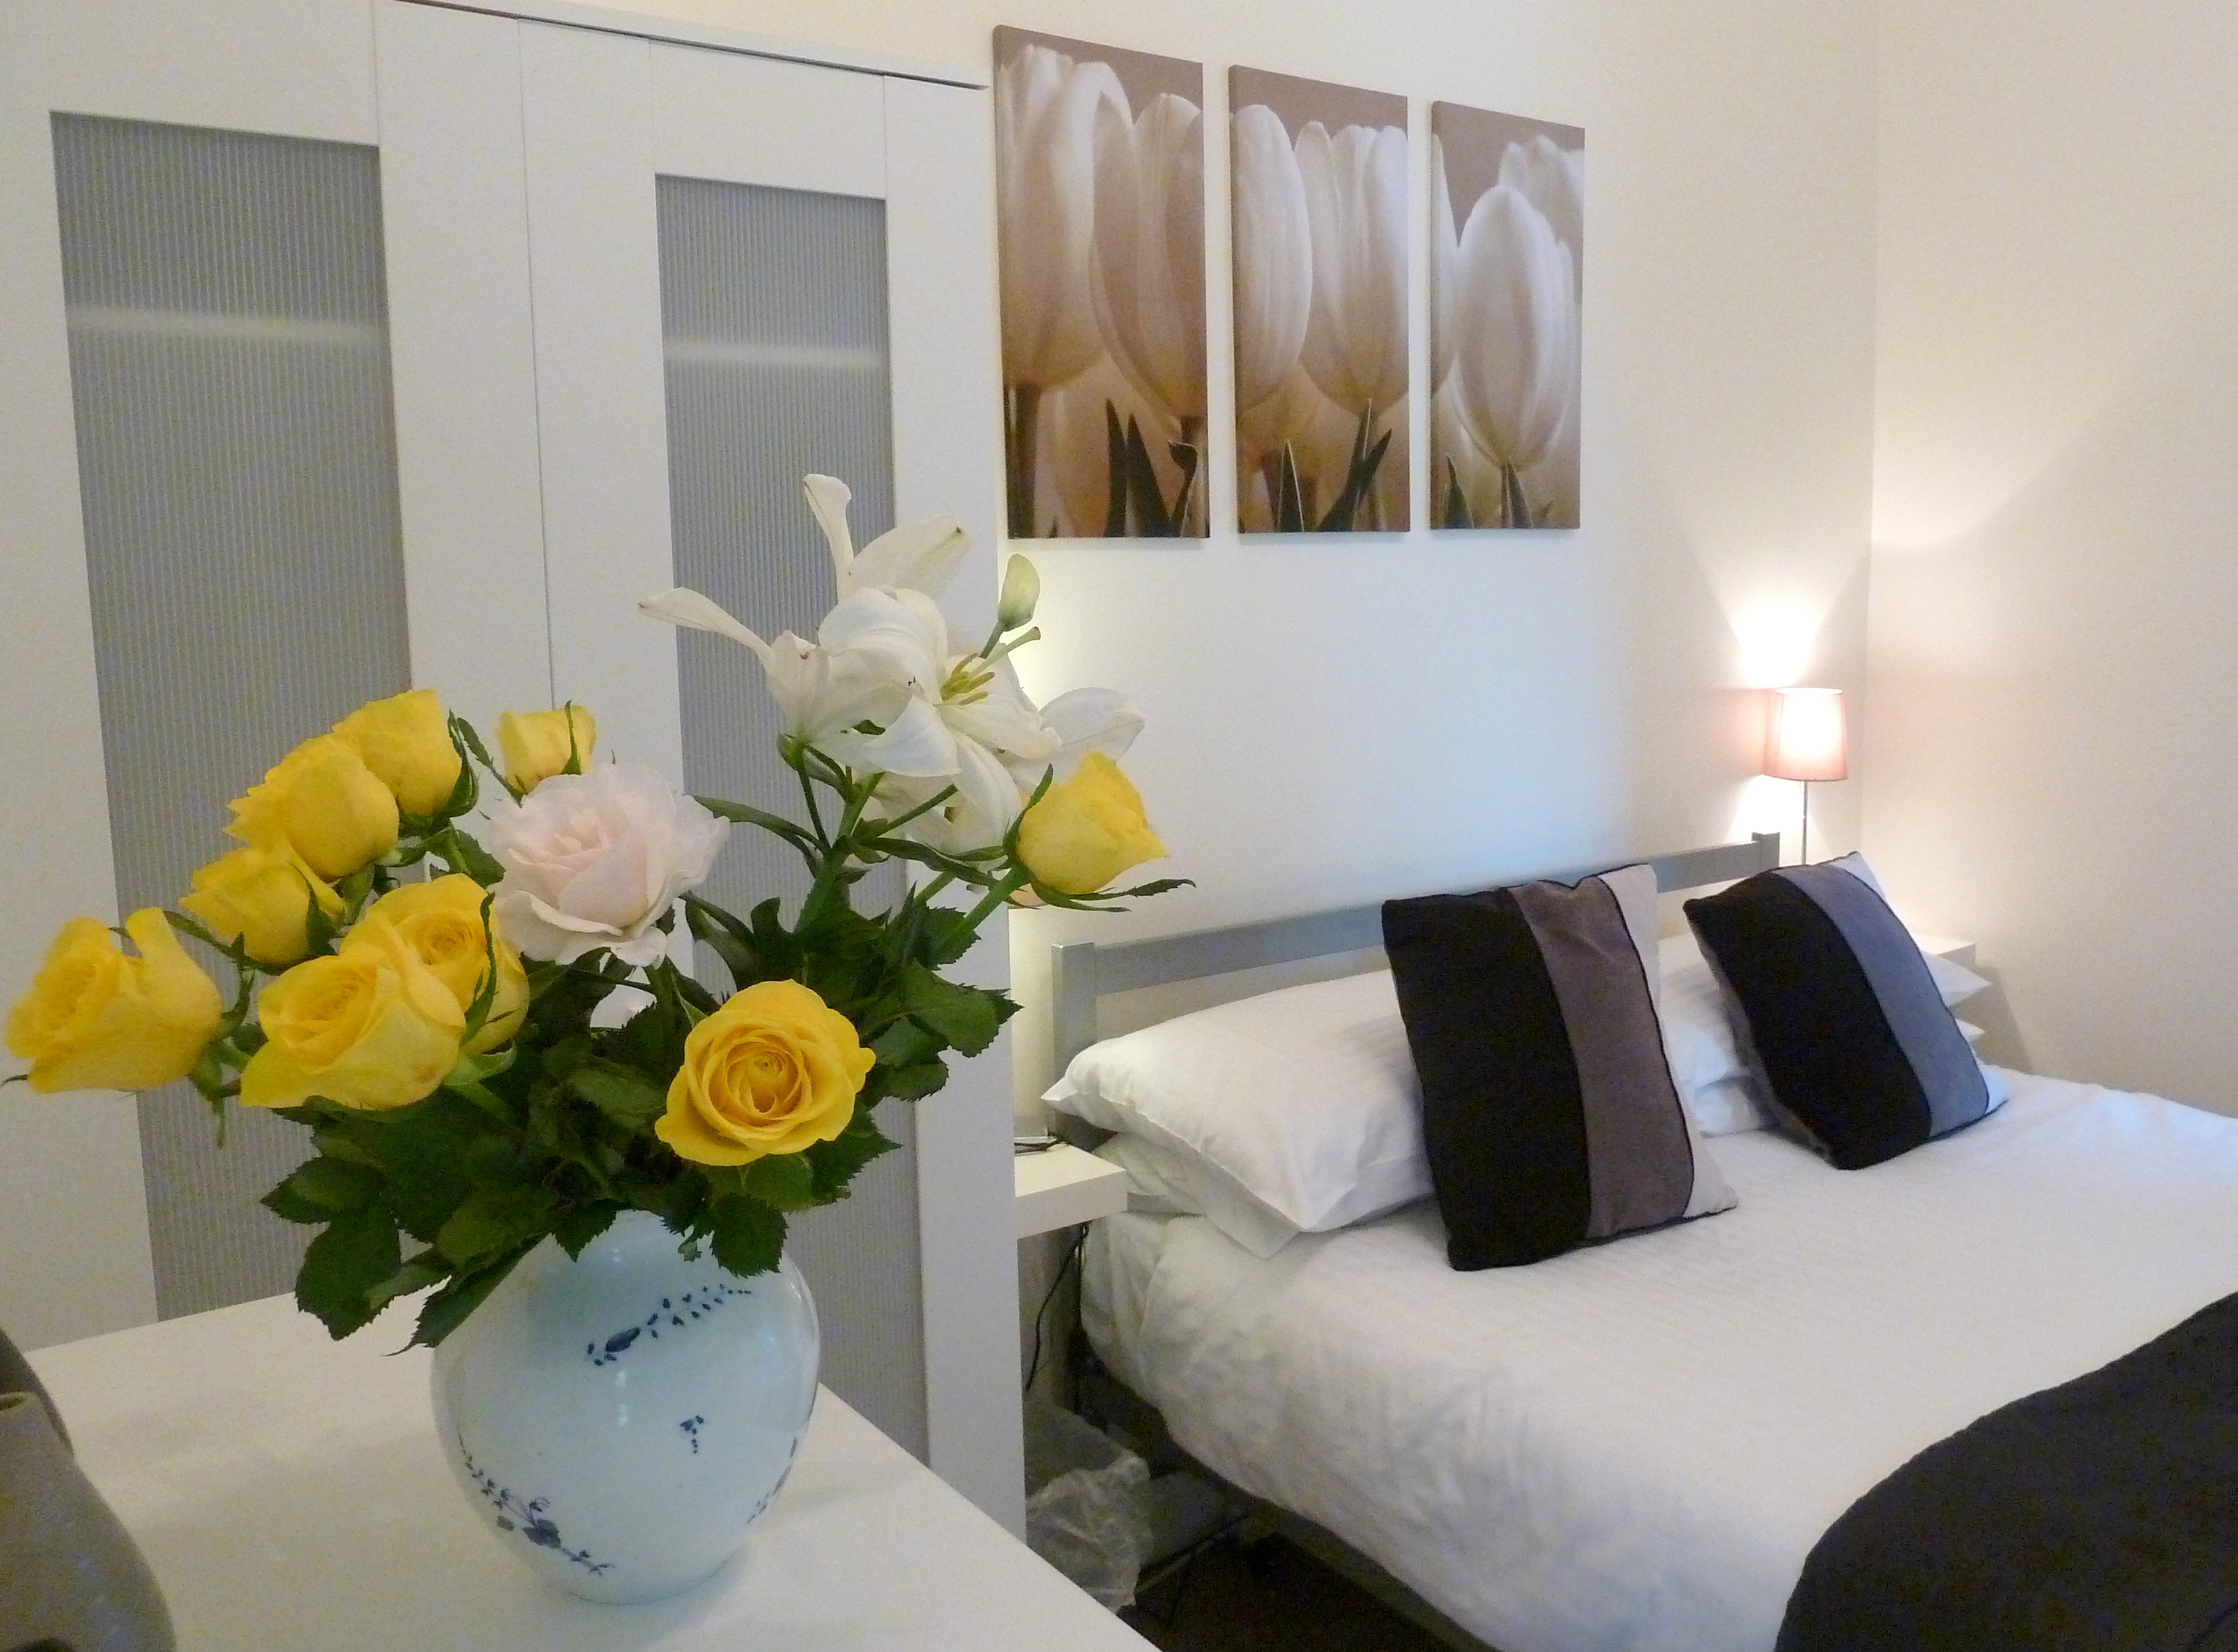 Bedford House Apartments, Torquay. Sel catering Holiday Accommodation